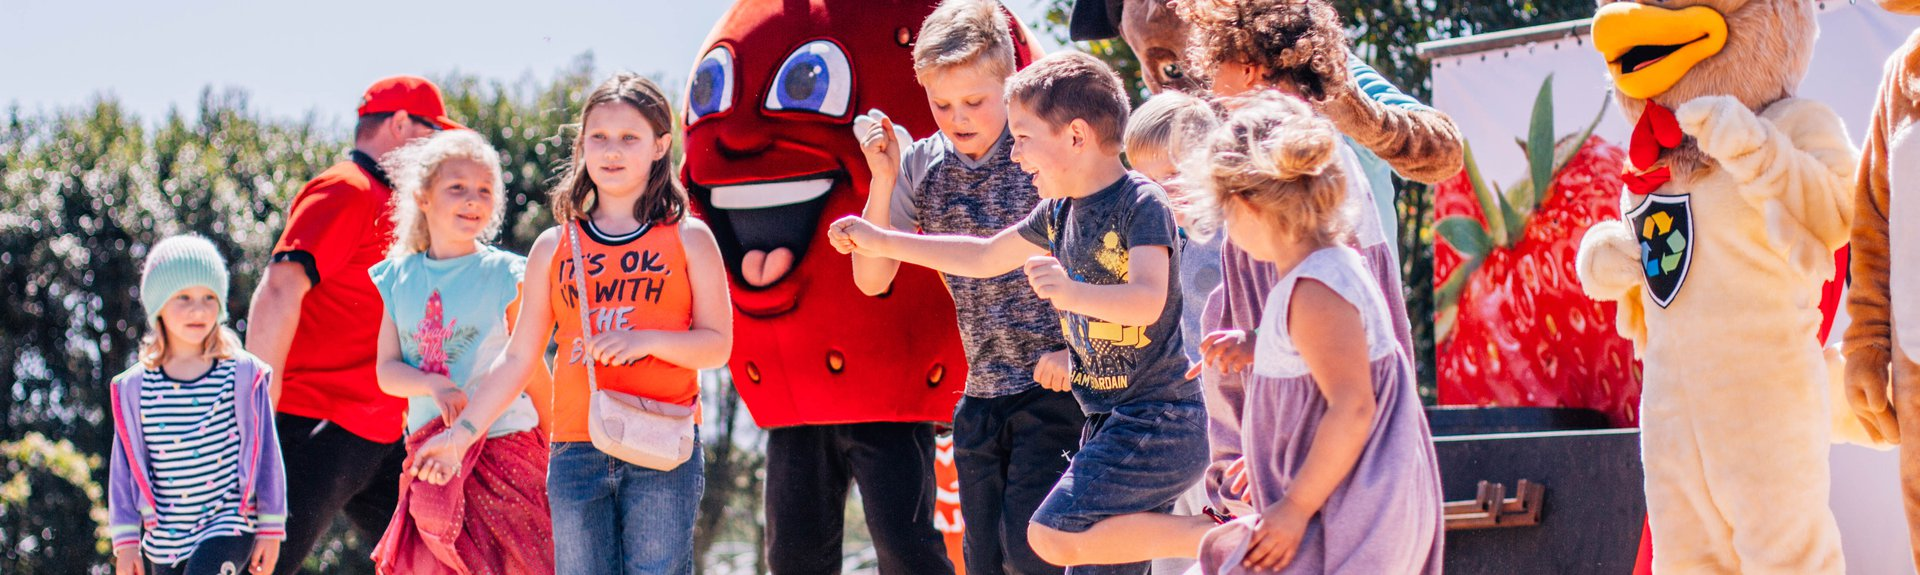 Strawberry Festival | Garden Route | Things to do With Kids